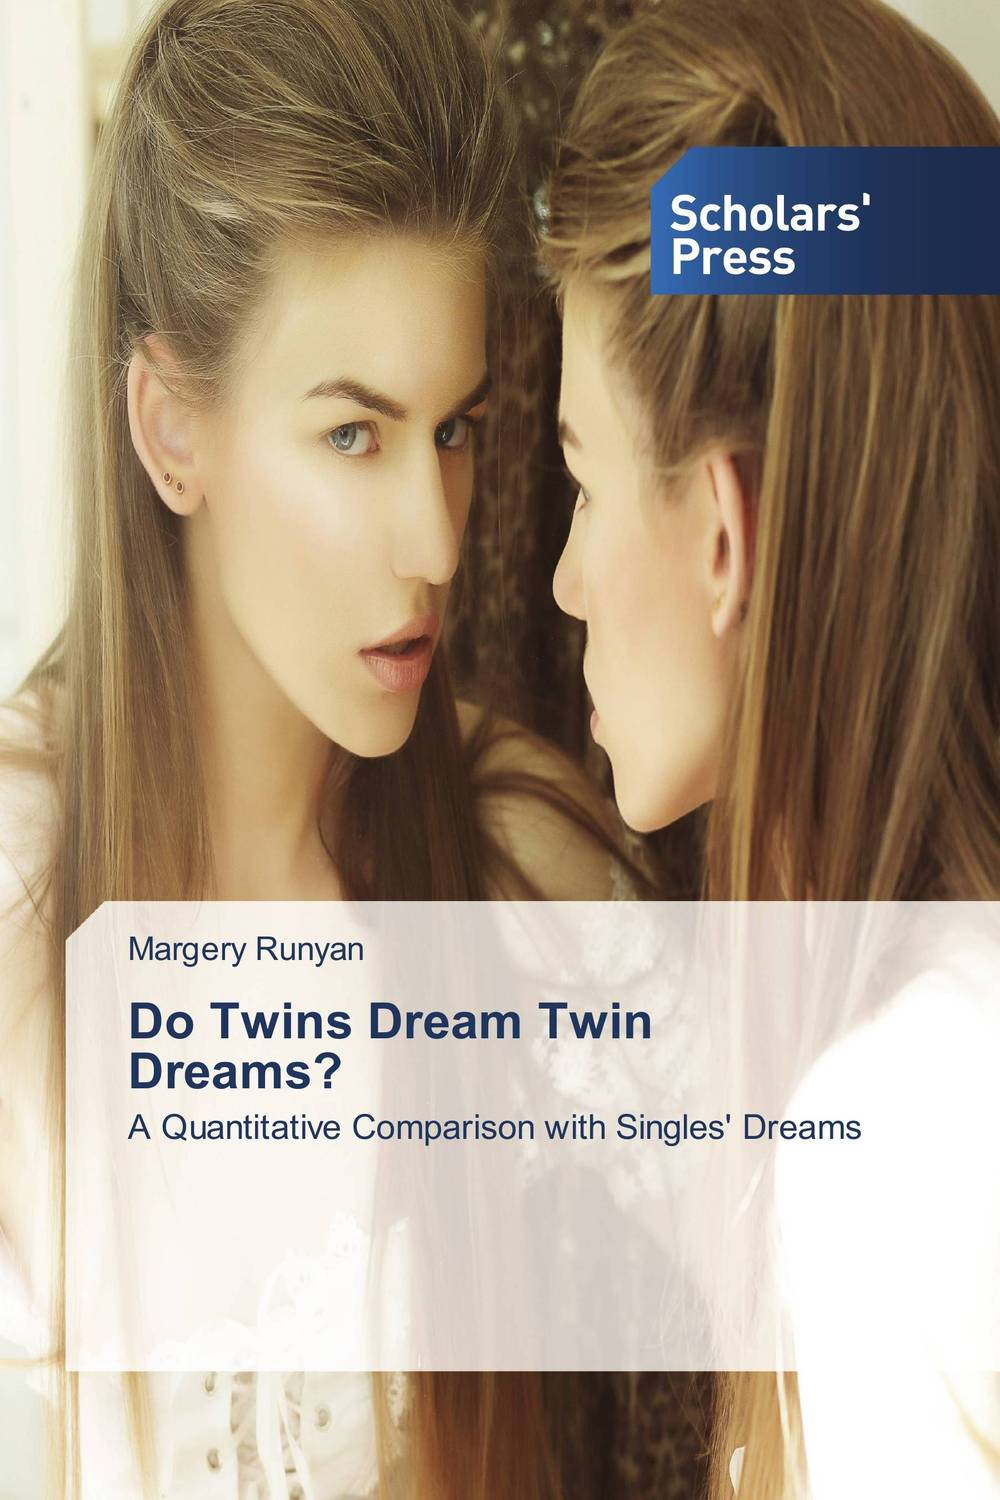 Do Twins Dream Twin Dreams? let the whole earth sing praise